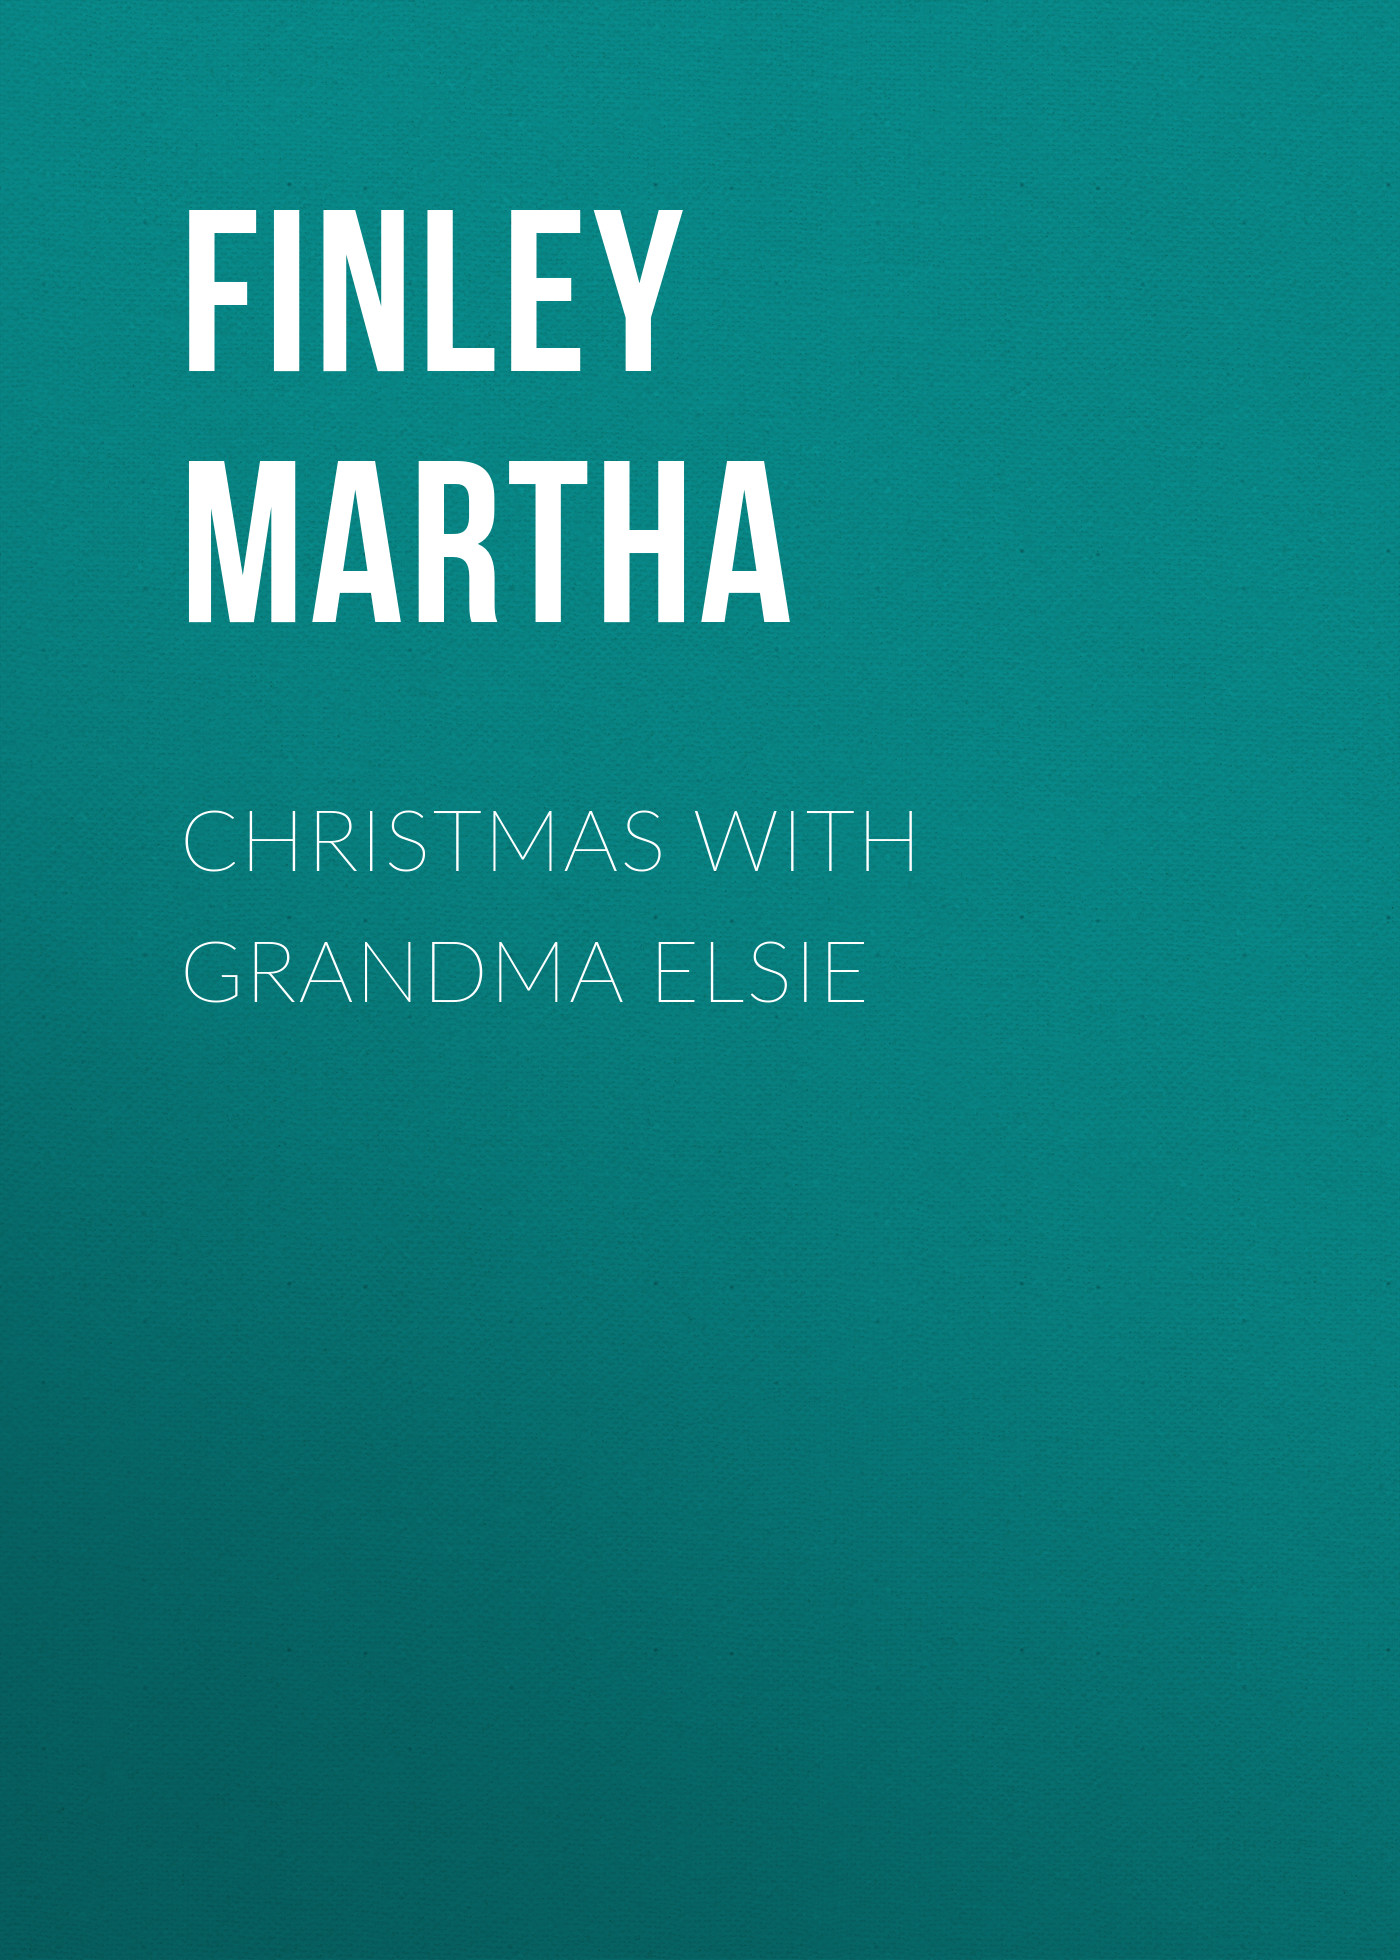 Finley Martha Christmas with Grandma Elsie цена